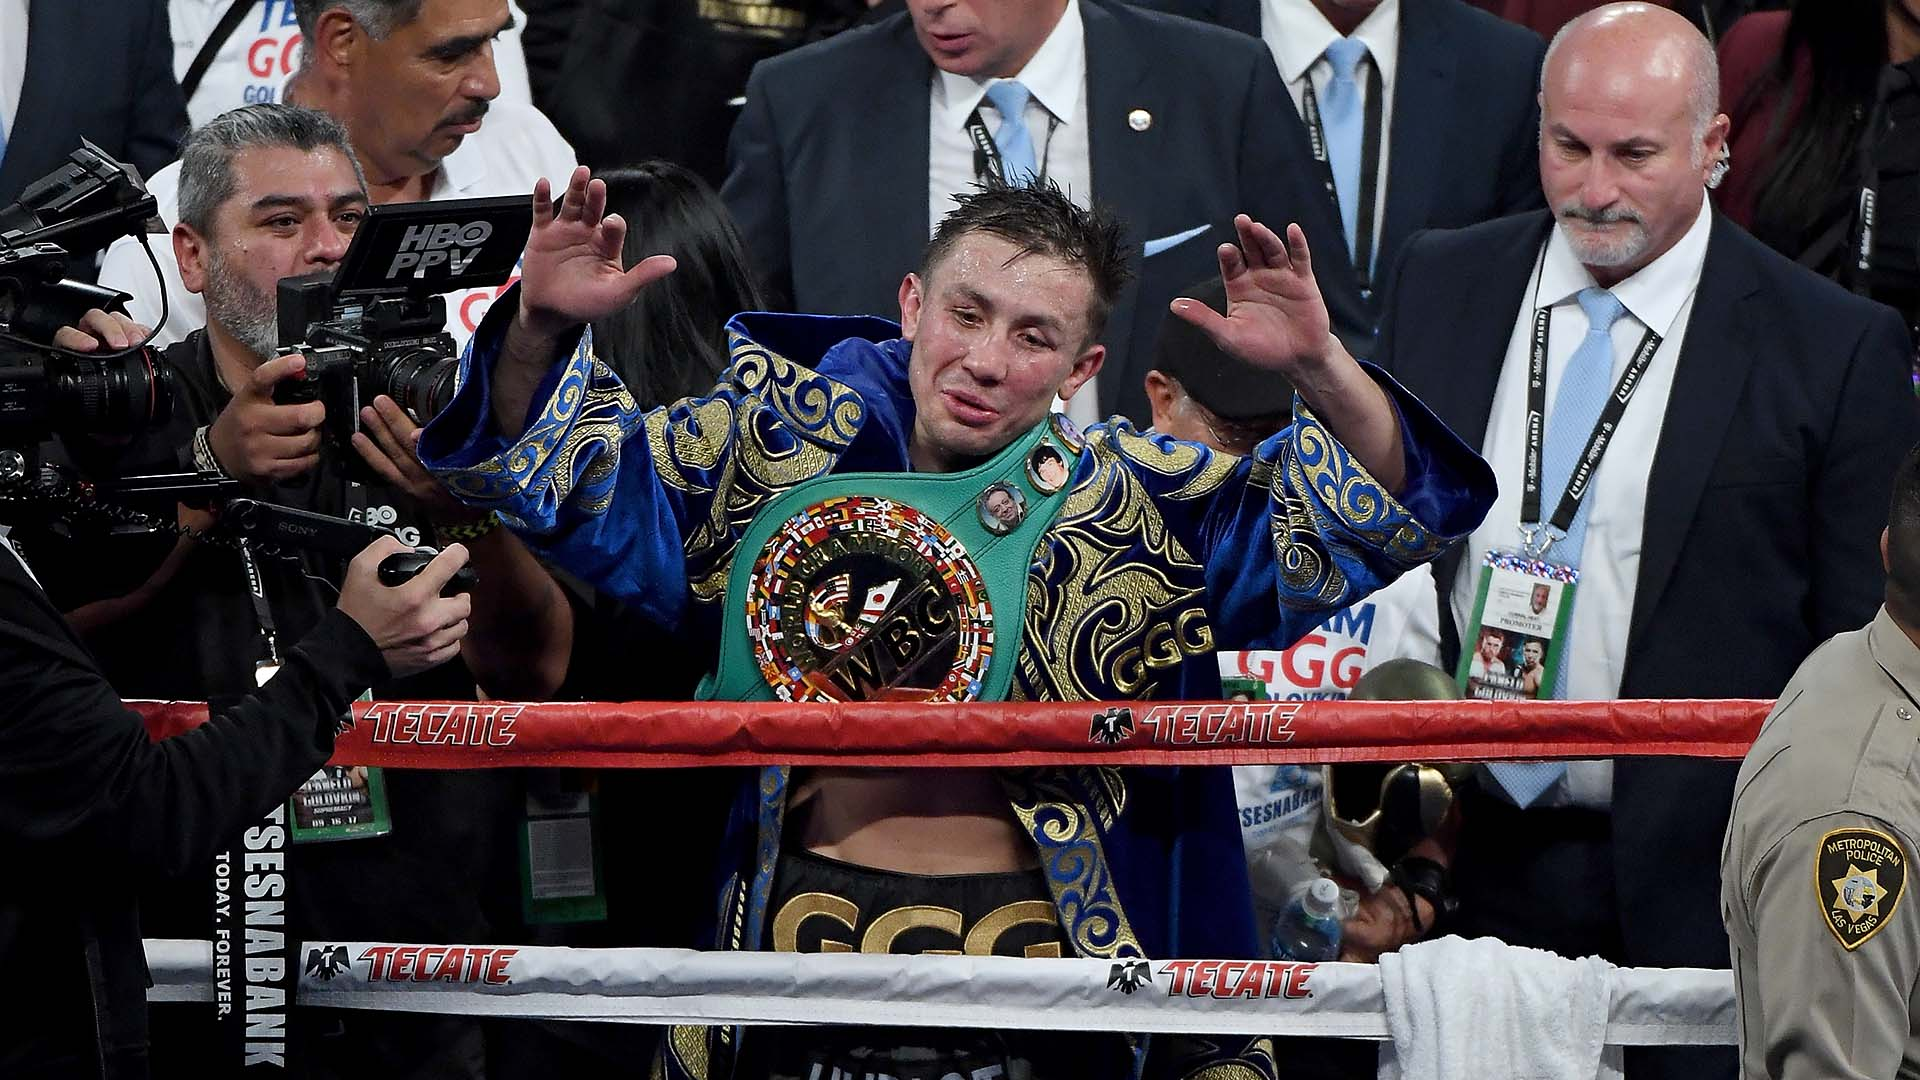 Canelo vs. GGG 2: Hopkins blasts Golovkin breaking his middleweight title defense record